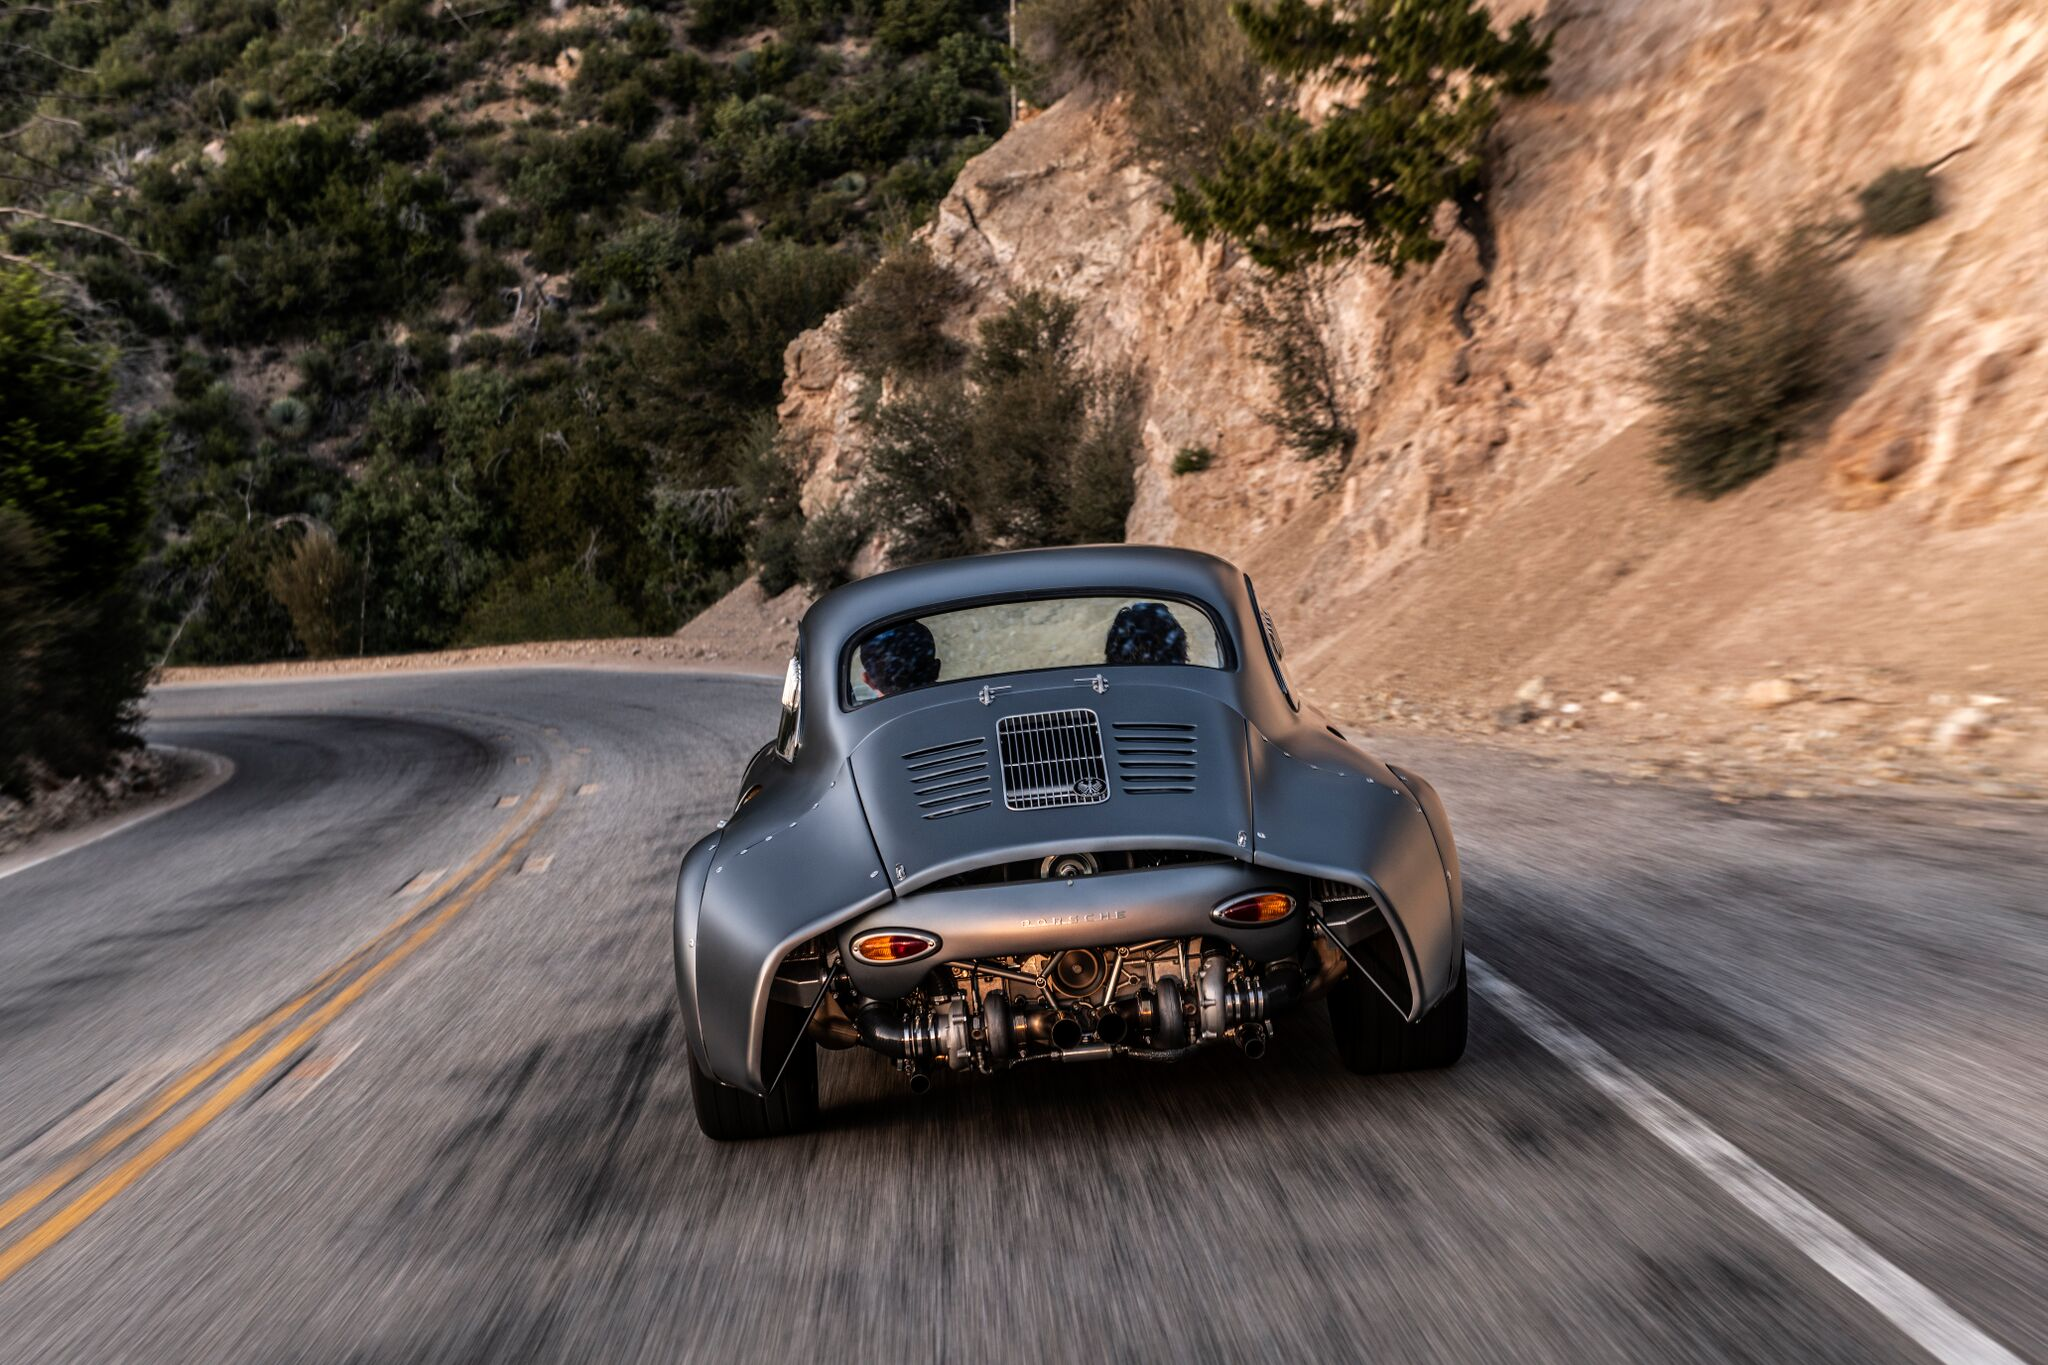 Porsche-356-RSR-Outlaw-by-Momo-and-Emory-motorsports-16